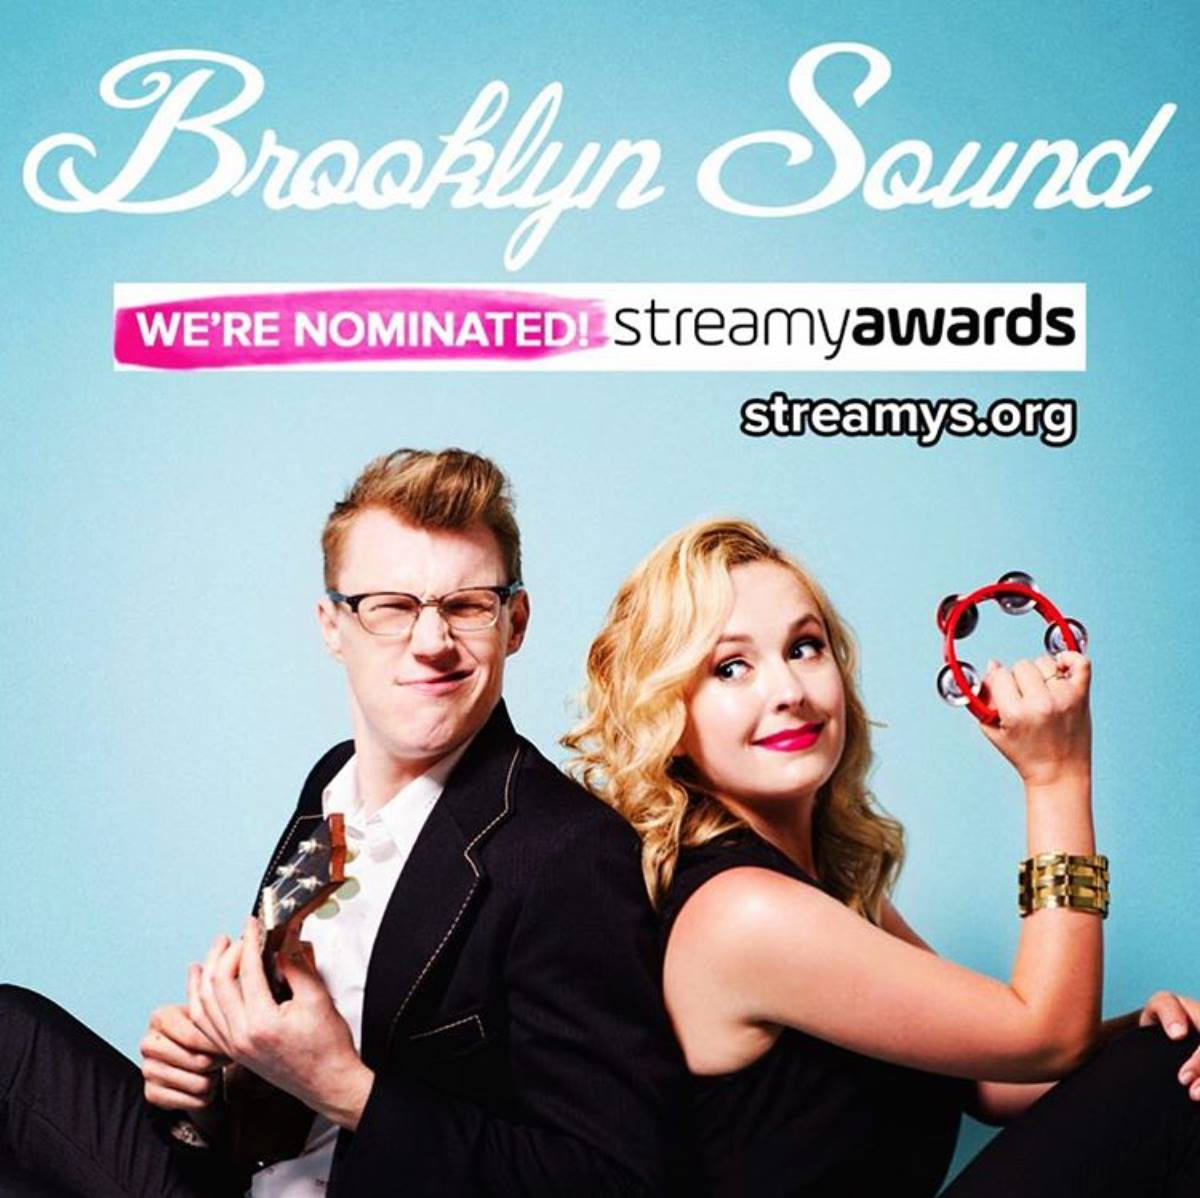 Brooklyn Sound WINS 2016 Streamy Award! - Julia was just in LA to attend the 2016 Streamy Awards, and the Brooklyn Sound team is still celebrating because the show WON a Streamy for best Indie! Check out the show at www.visitbrooklynsound.com